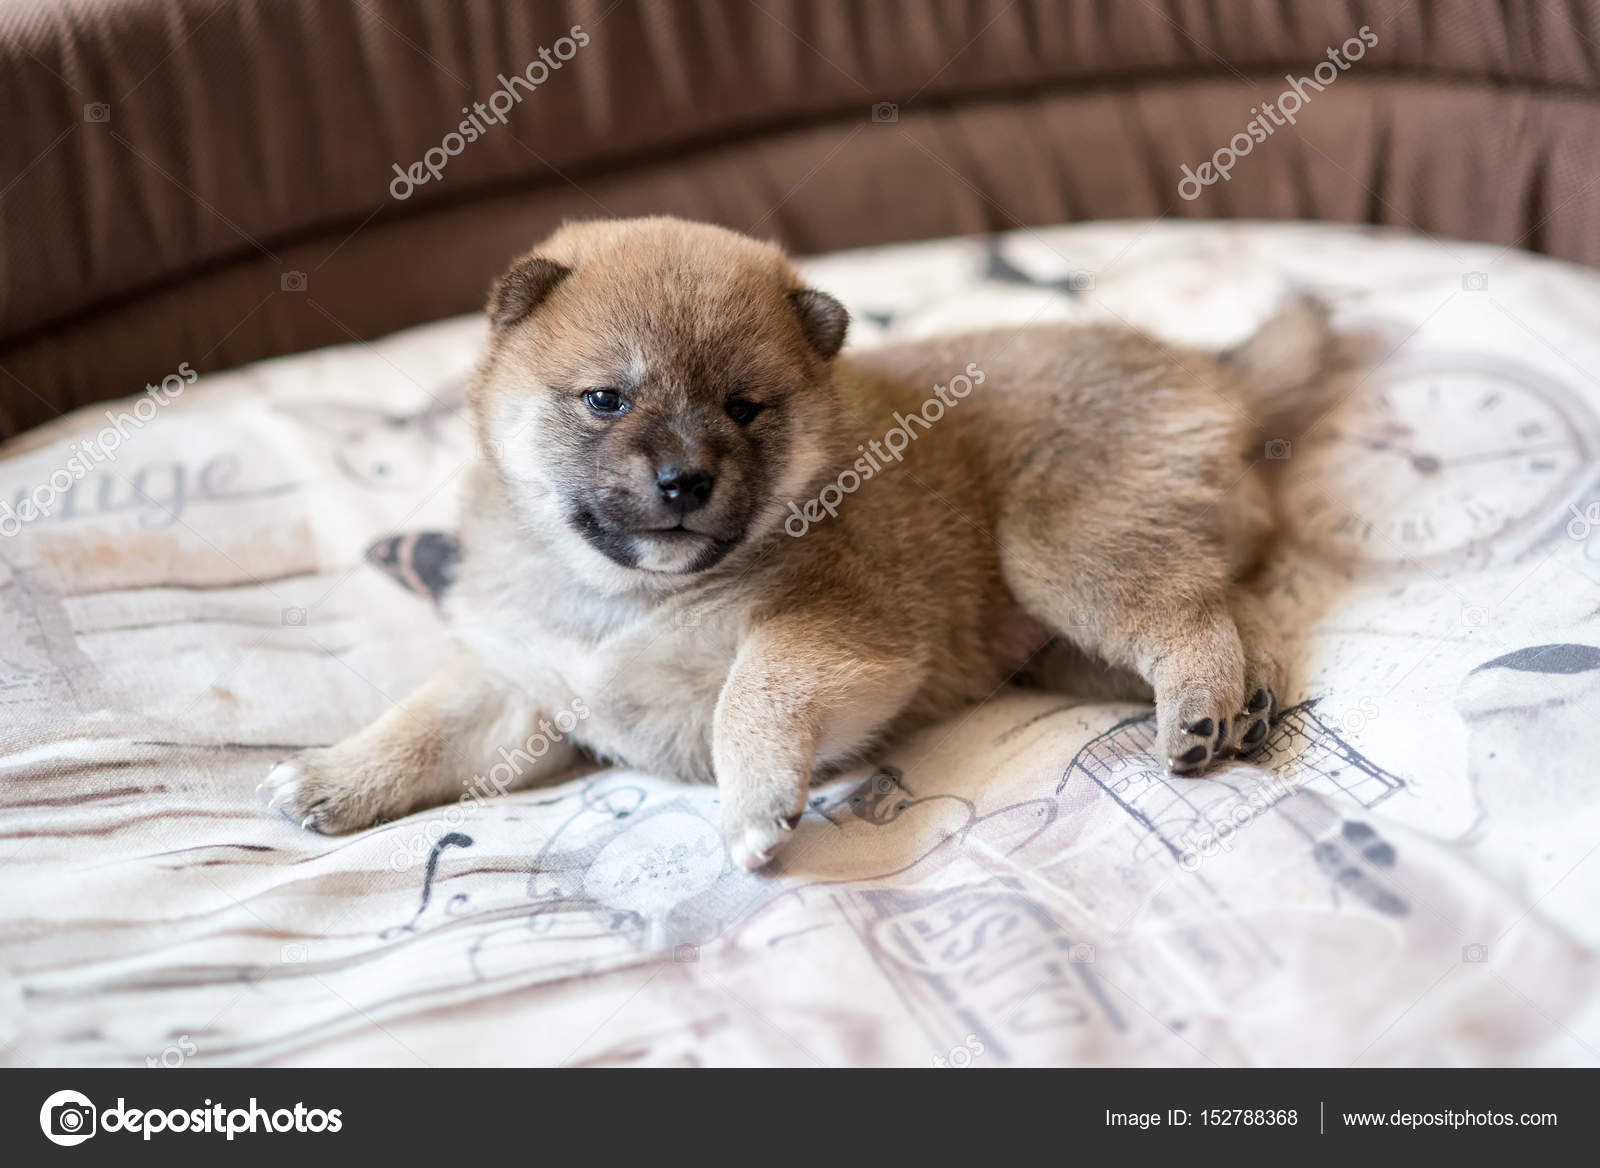 Cutest Shiba Inu Puppy Cute Shiba Inu Puppy Dog Stock Photo C Photology1971 152788368